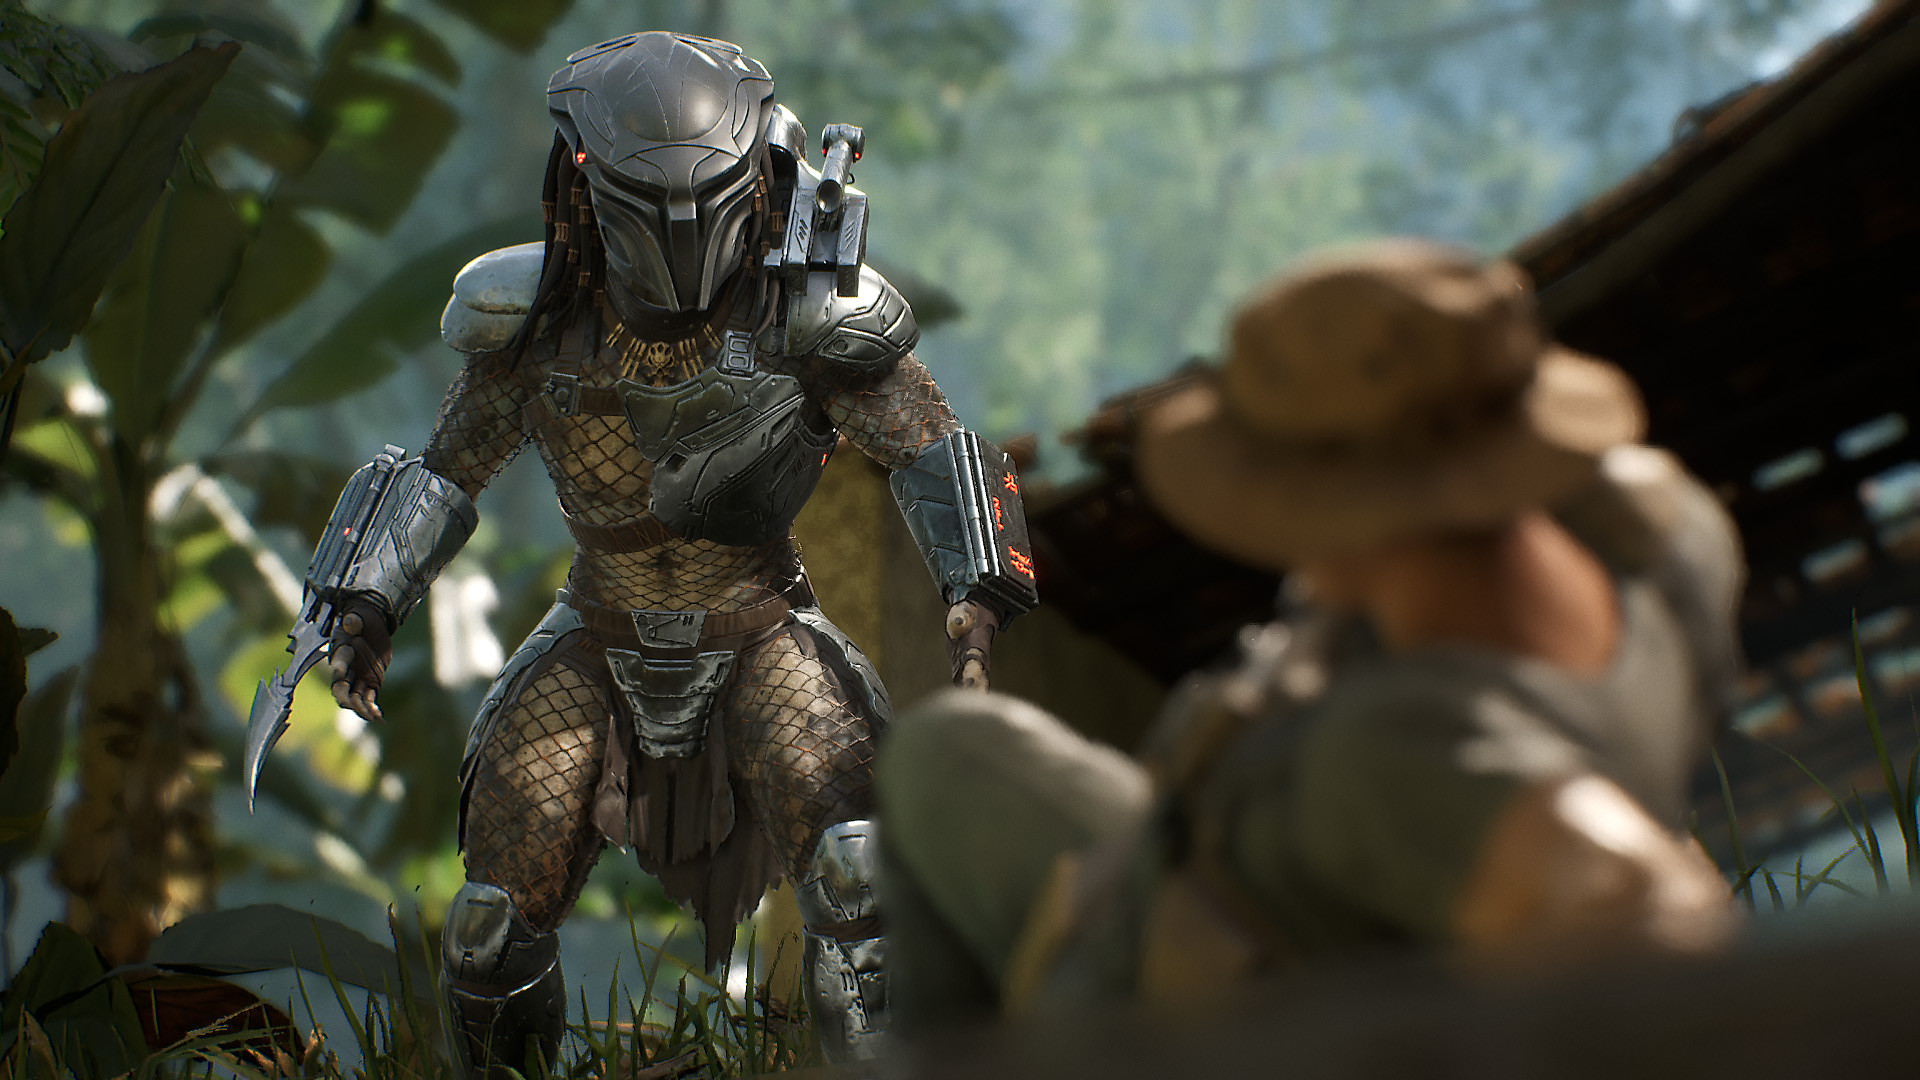 predator hunting grounds screenshot 01 ps4 04dec19 en us